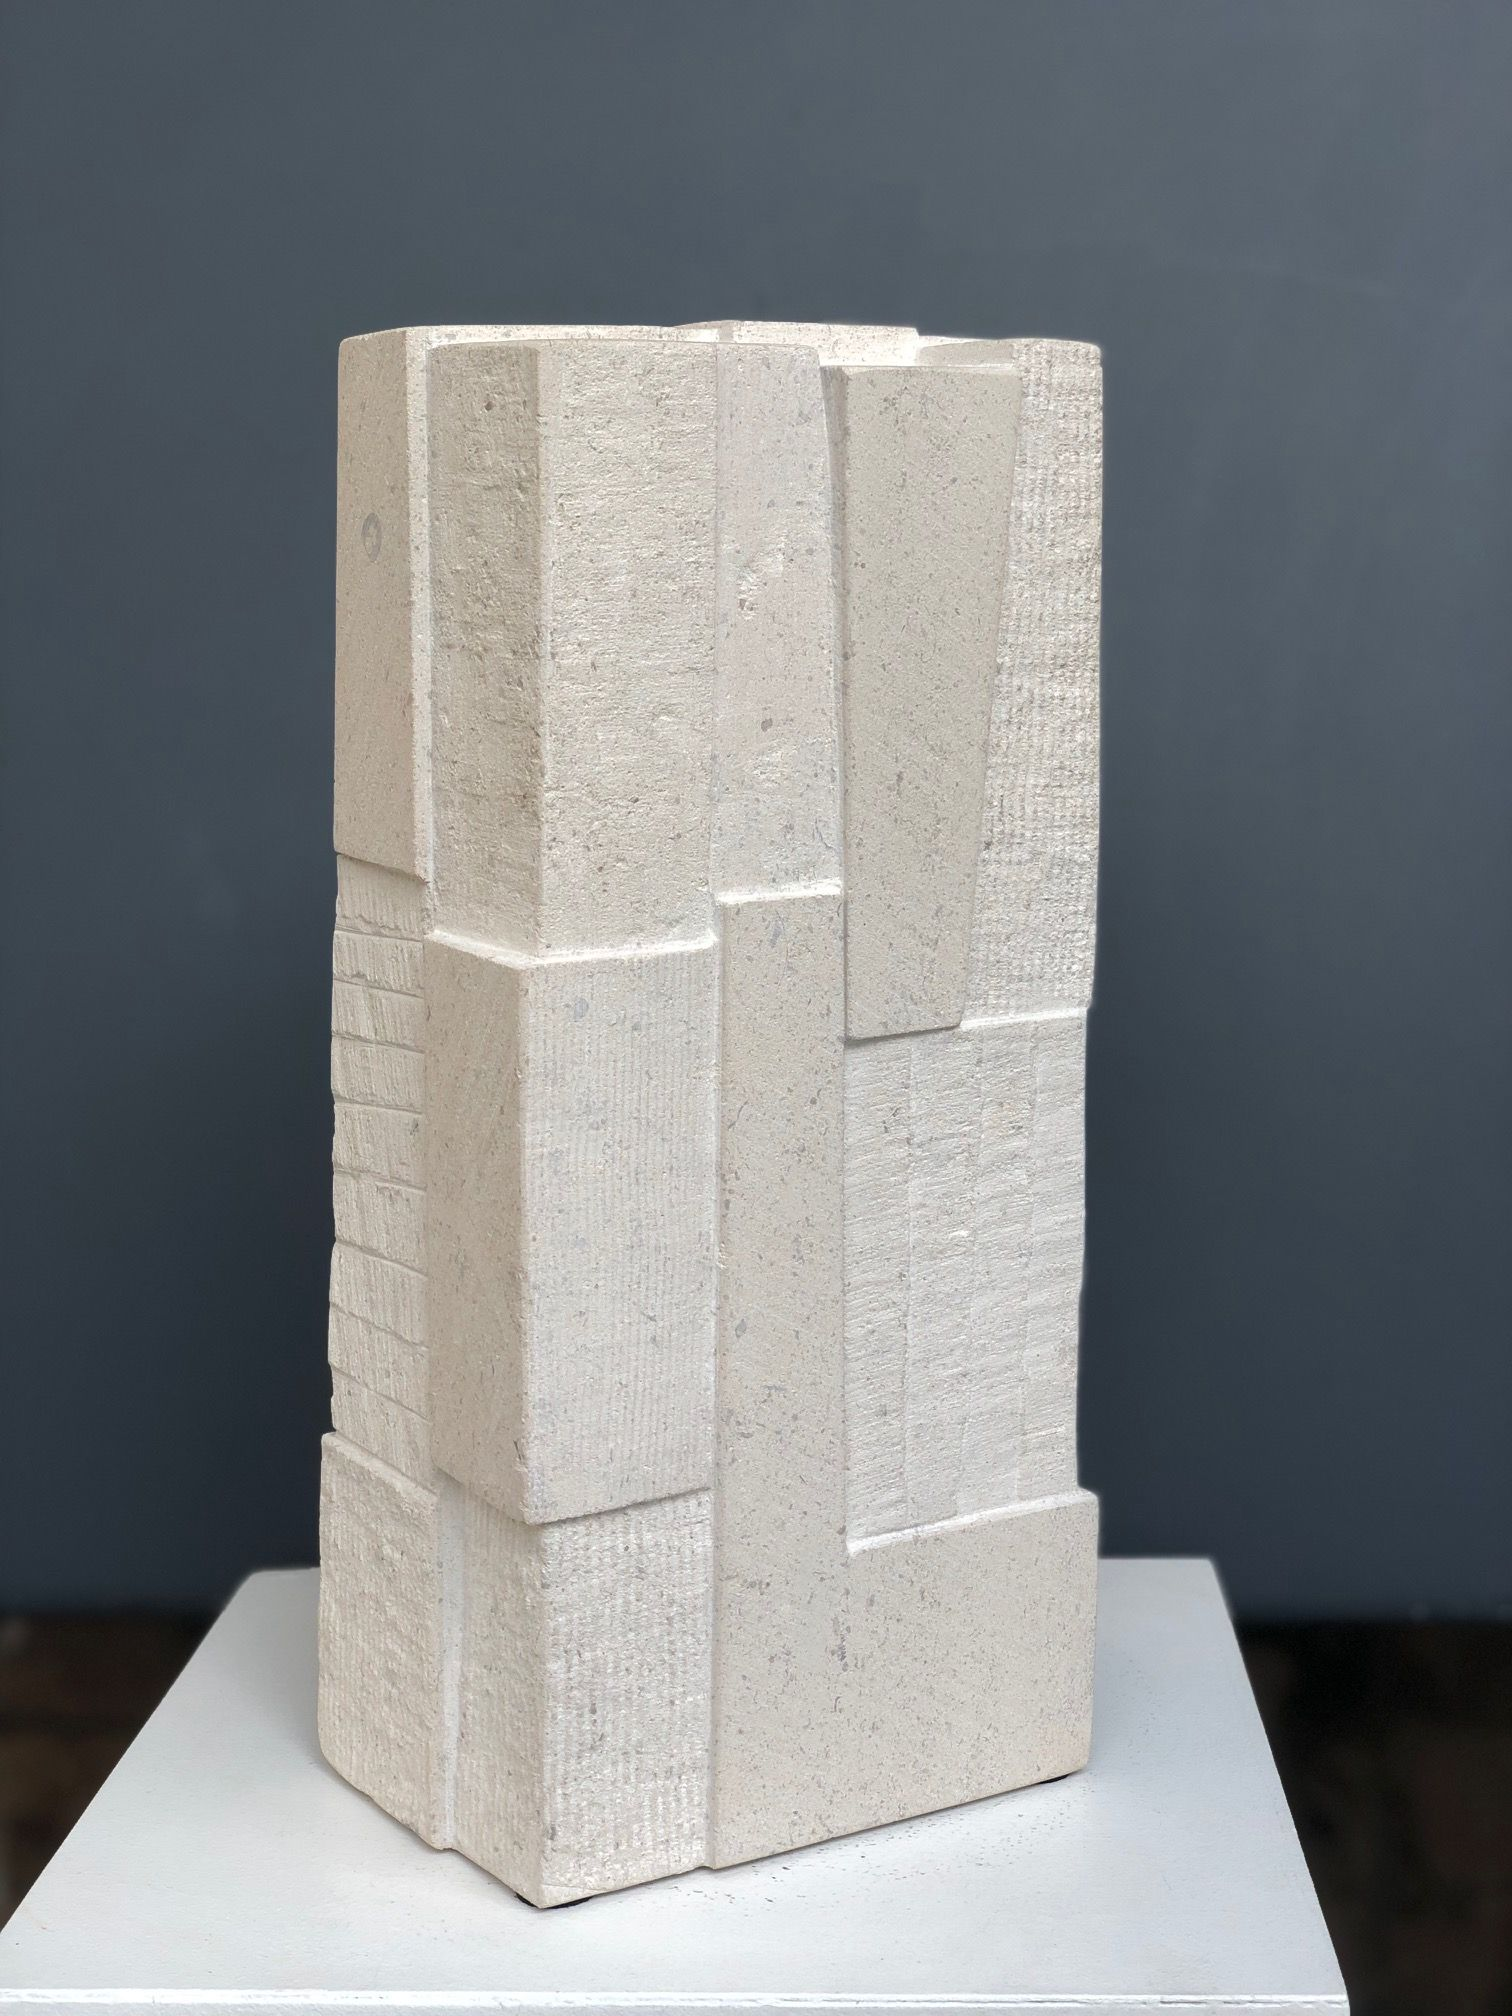 Being stone, Unity series - Delphine Brabant - Sculpture - detail 1